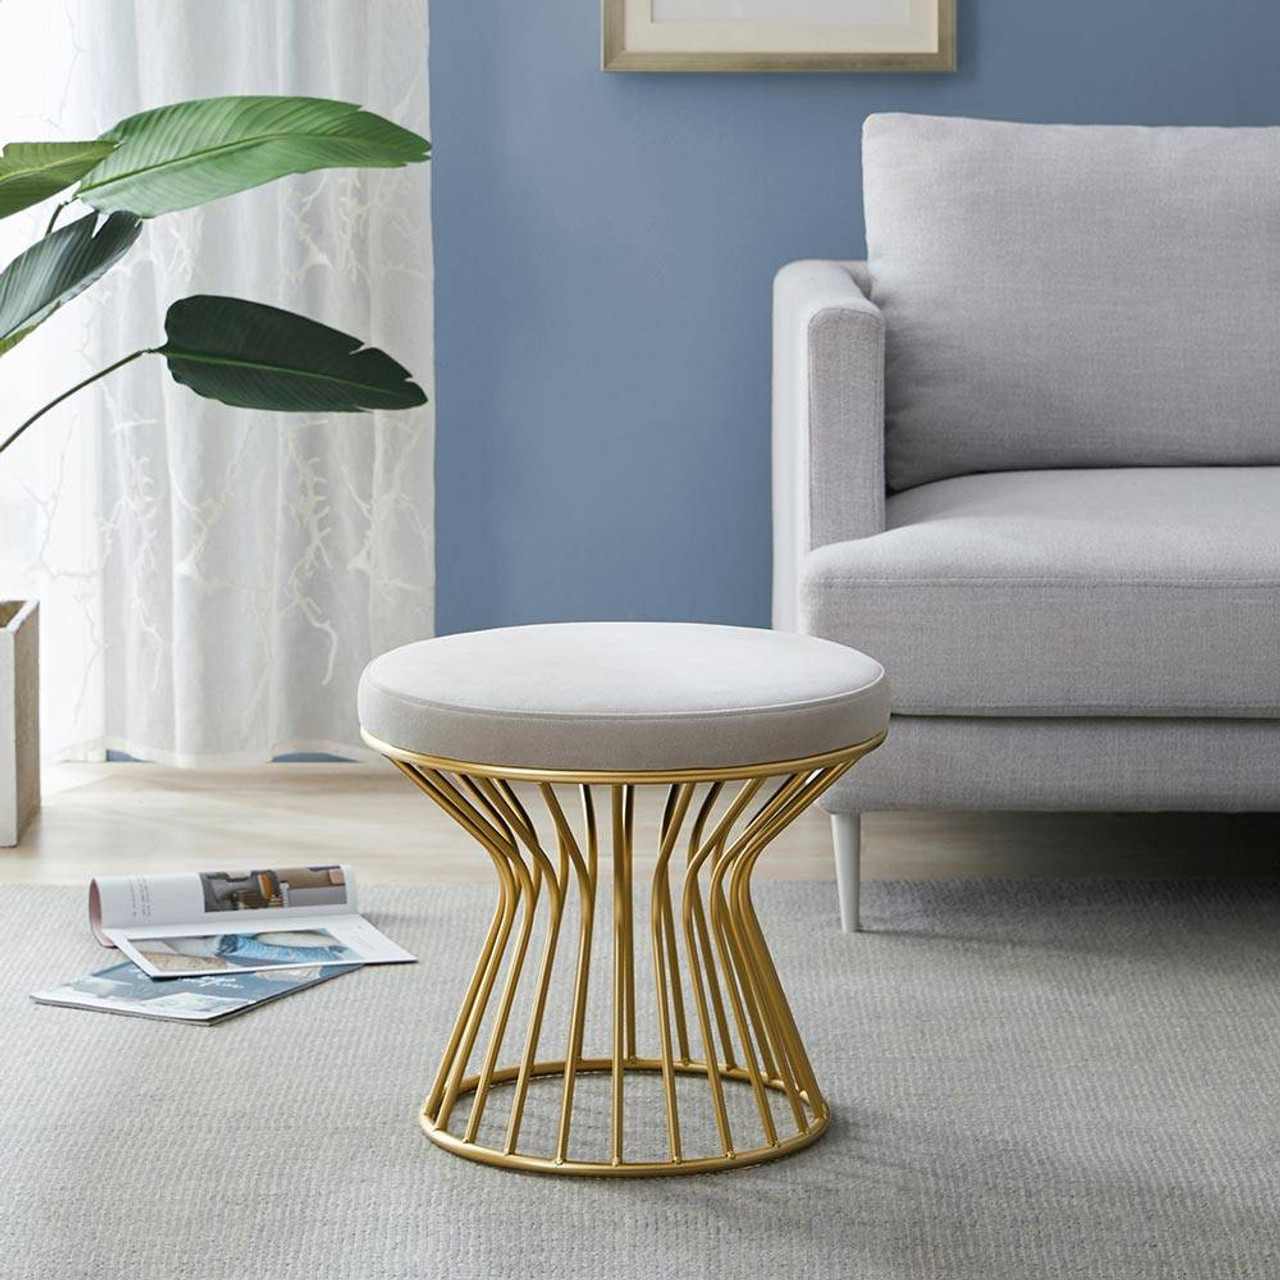 Stupendous Modern Round Velvet Ottoman Stool W Gold Metal Base Caraccident5 Cool Chair Designs And Ideas Caraccident5Info